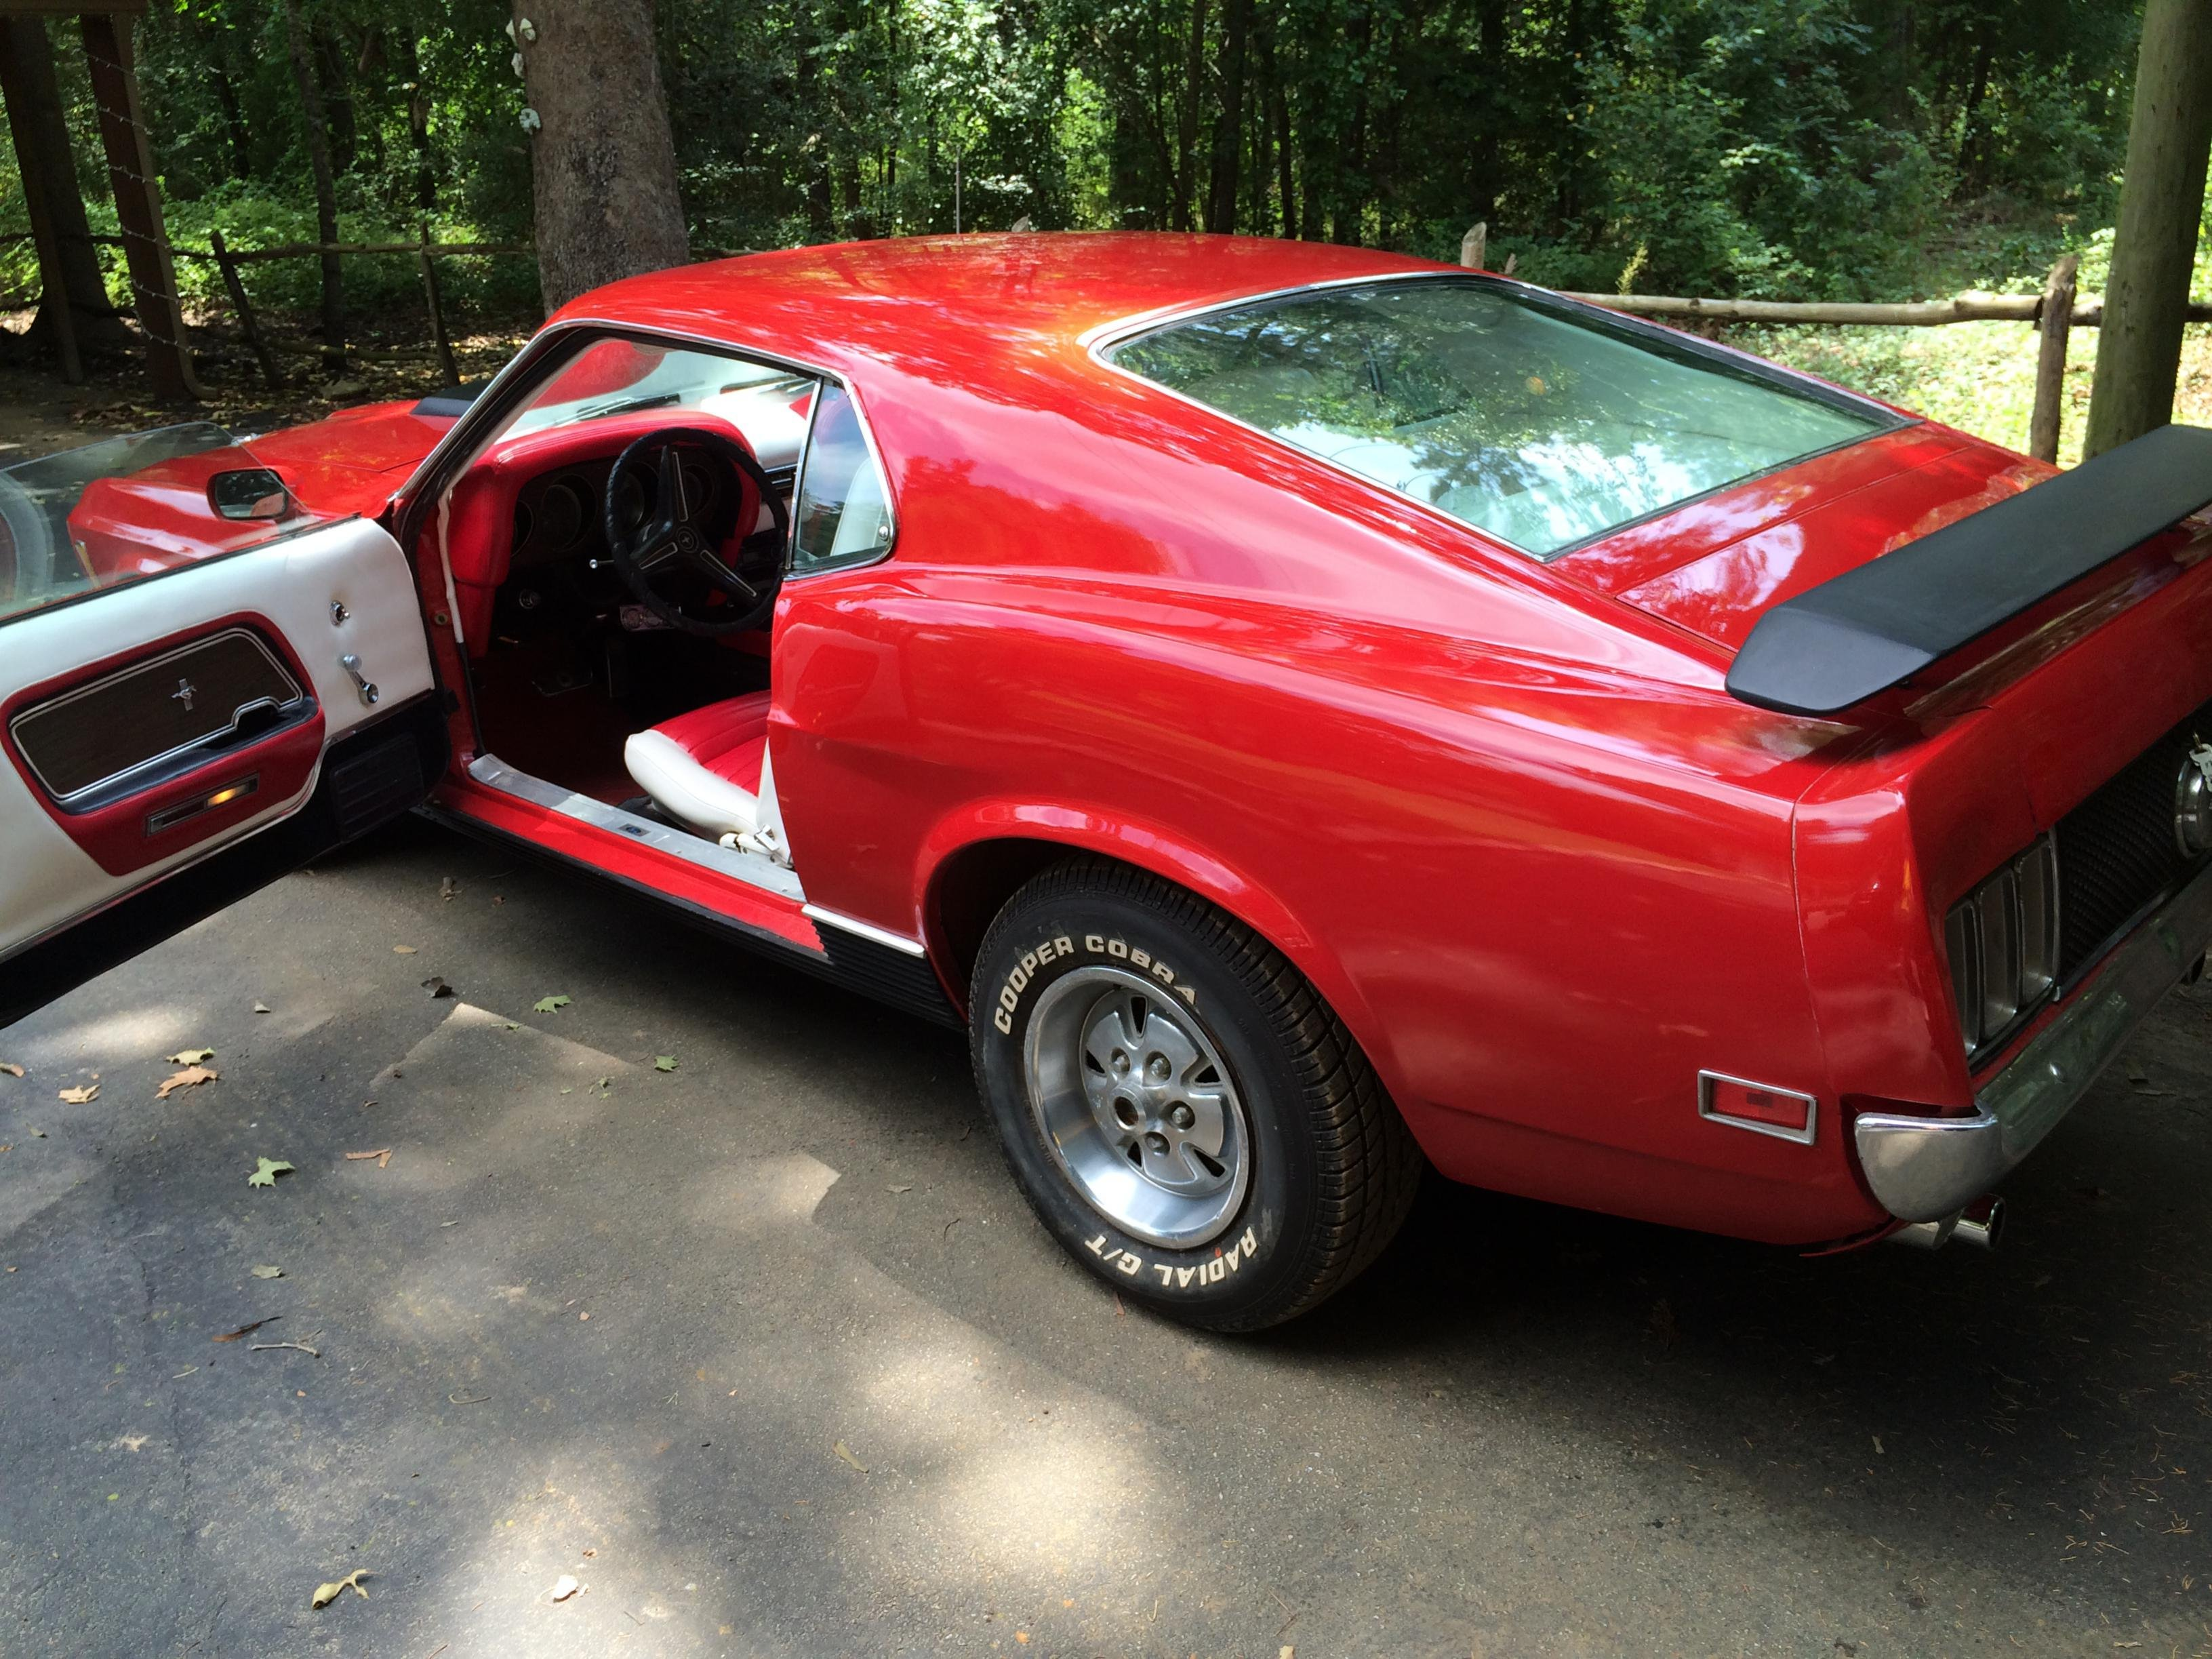 How Much Is A Mustang Mach 1 Worth